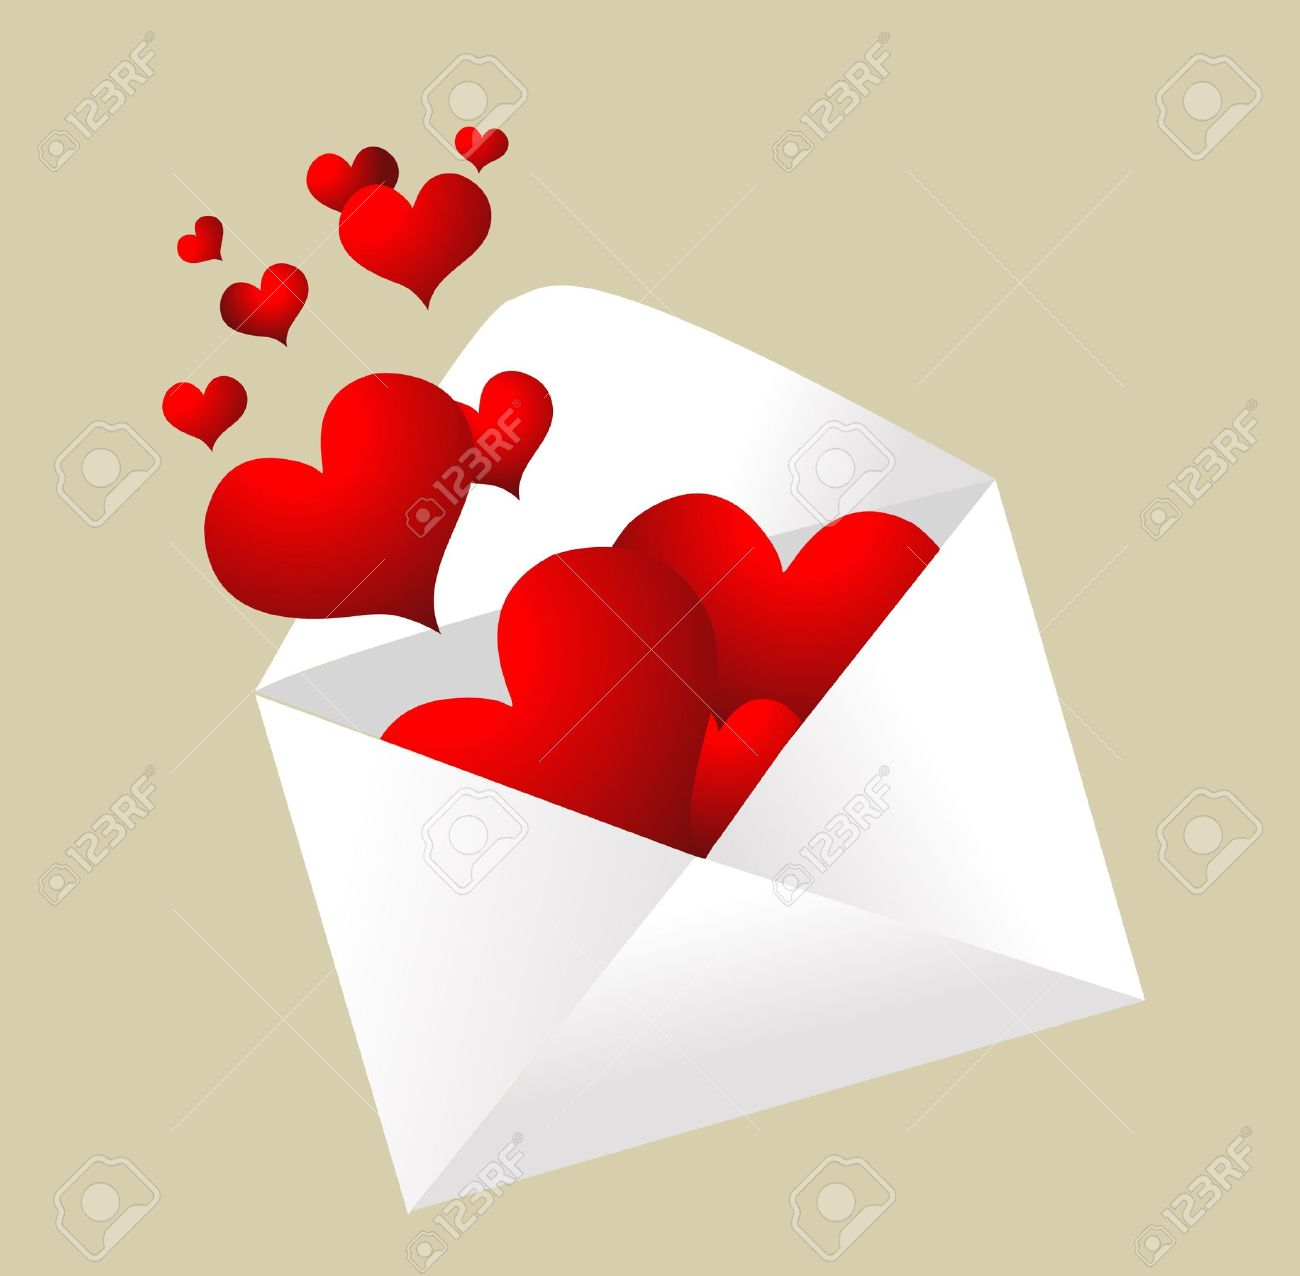 Envelope with hearts popping out - 14857302